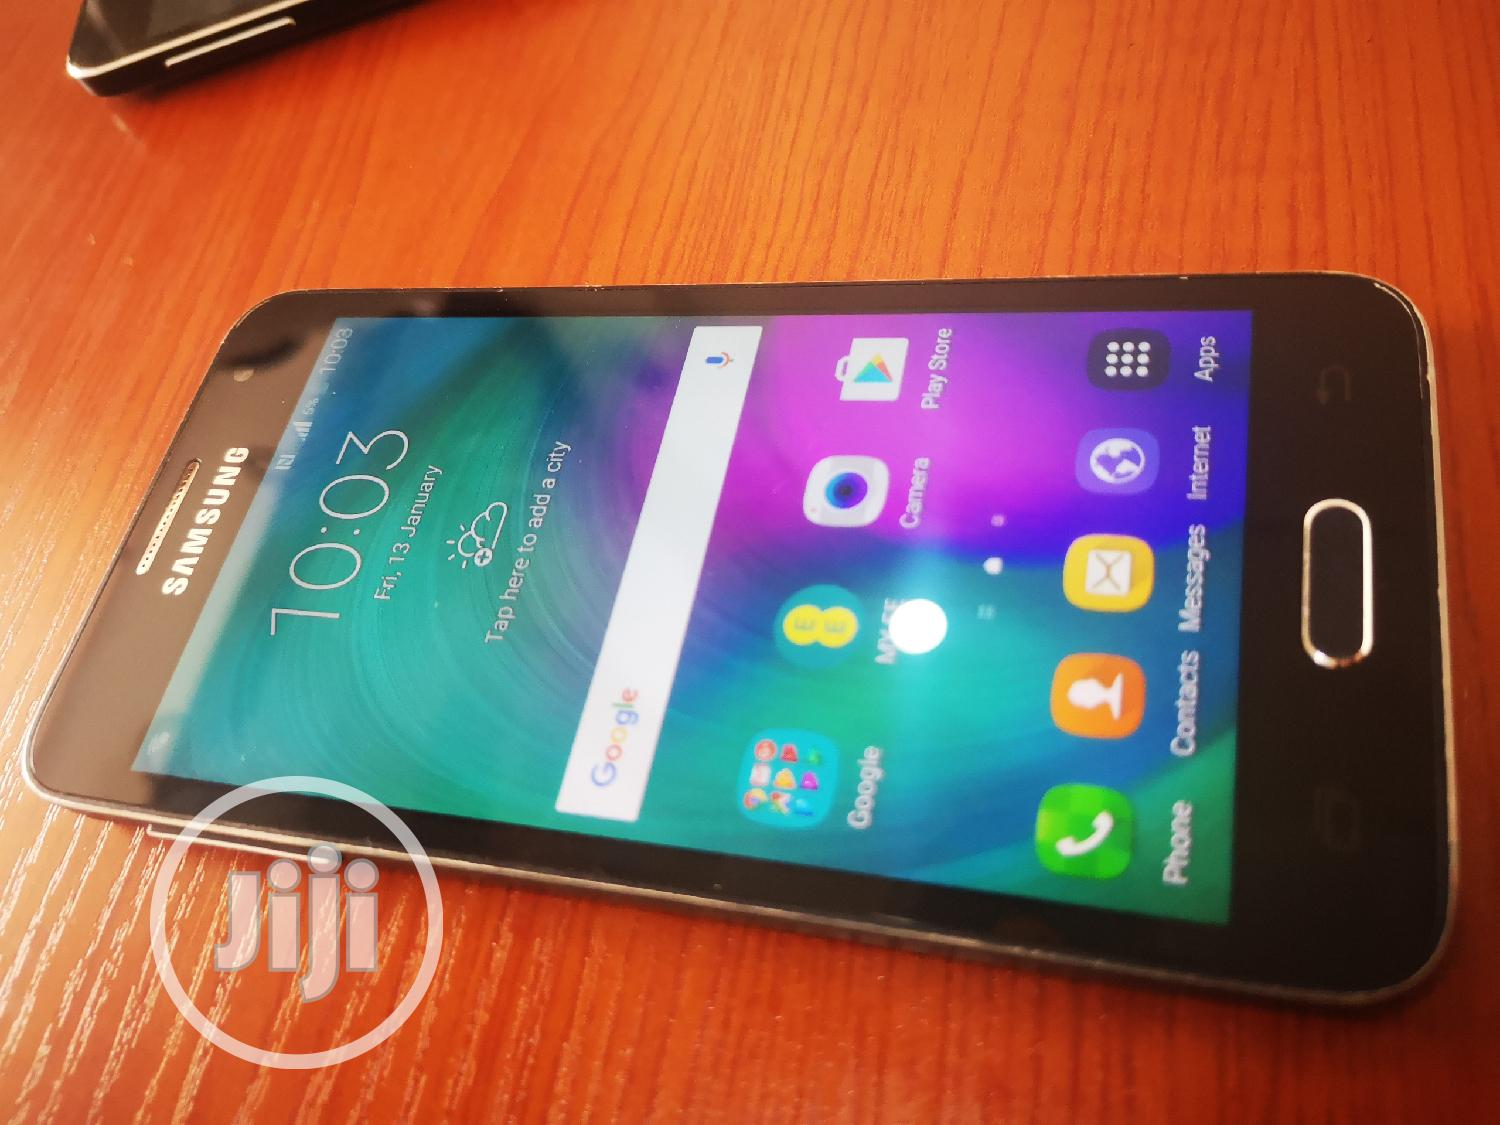 Samsung Galaxy A3 16 GB Black | Mobile Phones for sale in Ikeja, Lagos State, Nigeria